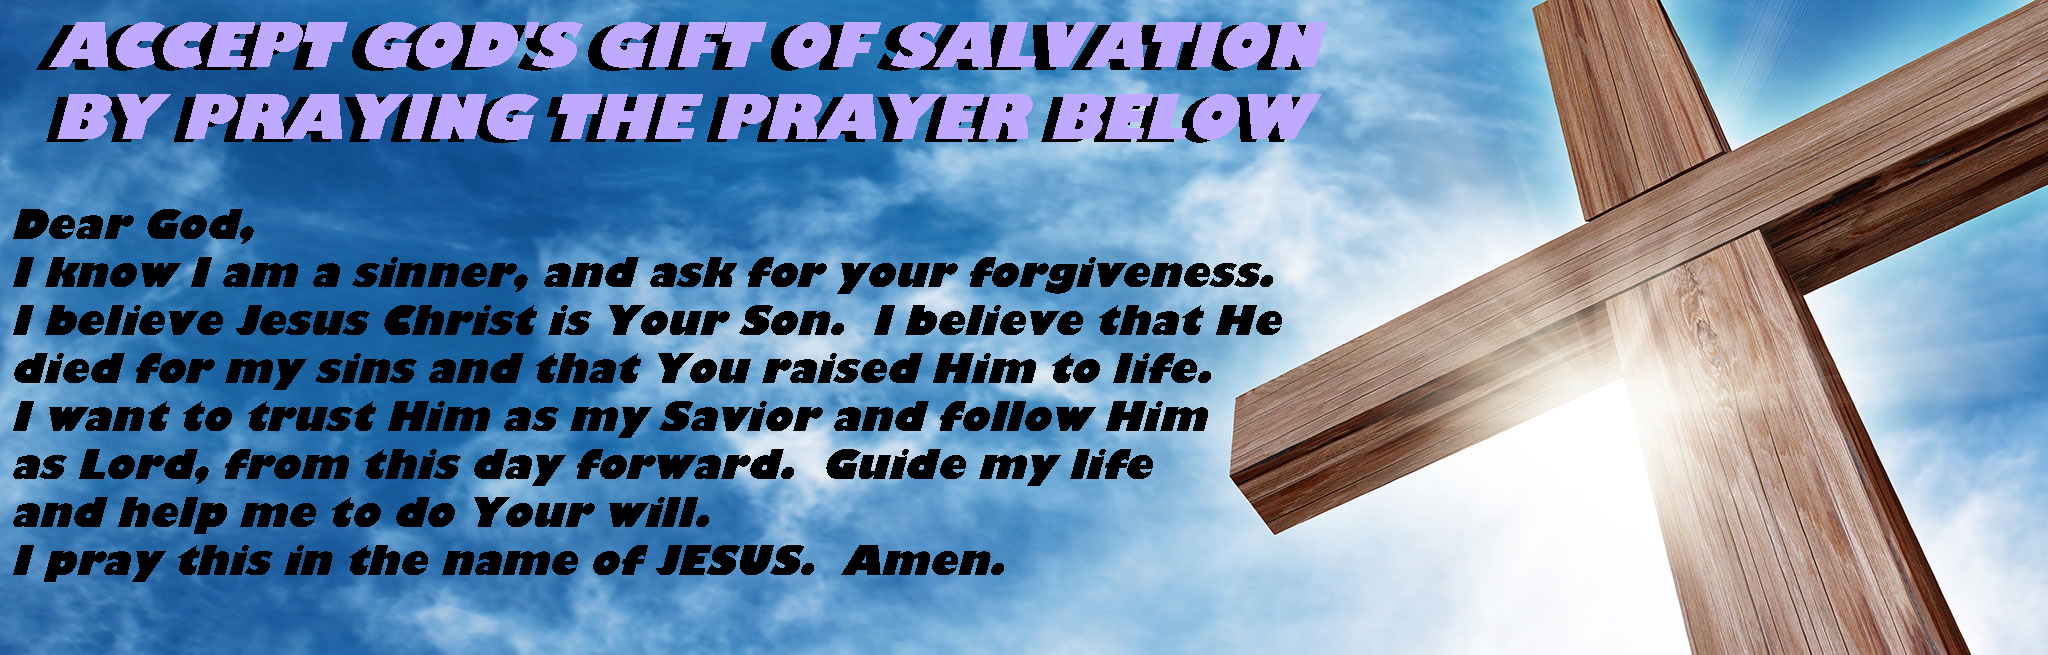 accept God's gift of salvation by praying the prayer below